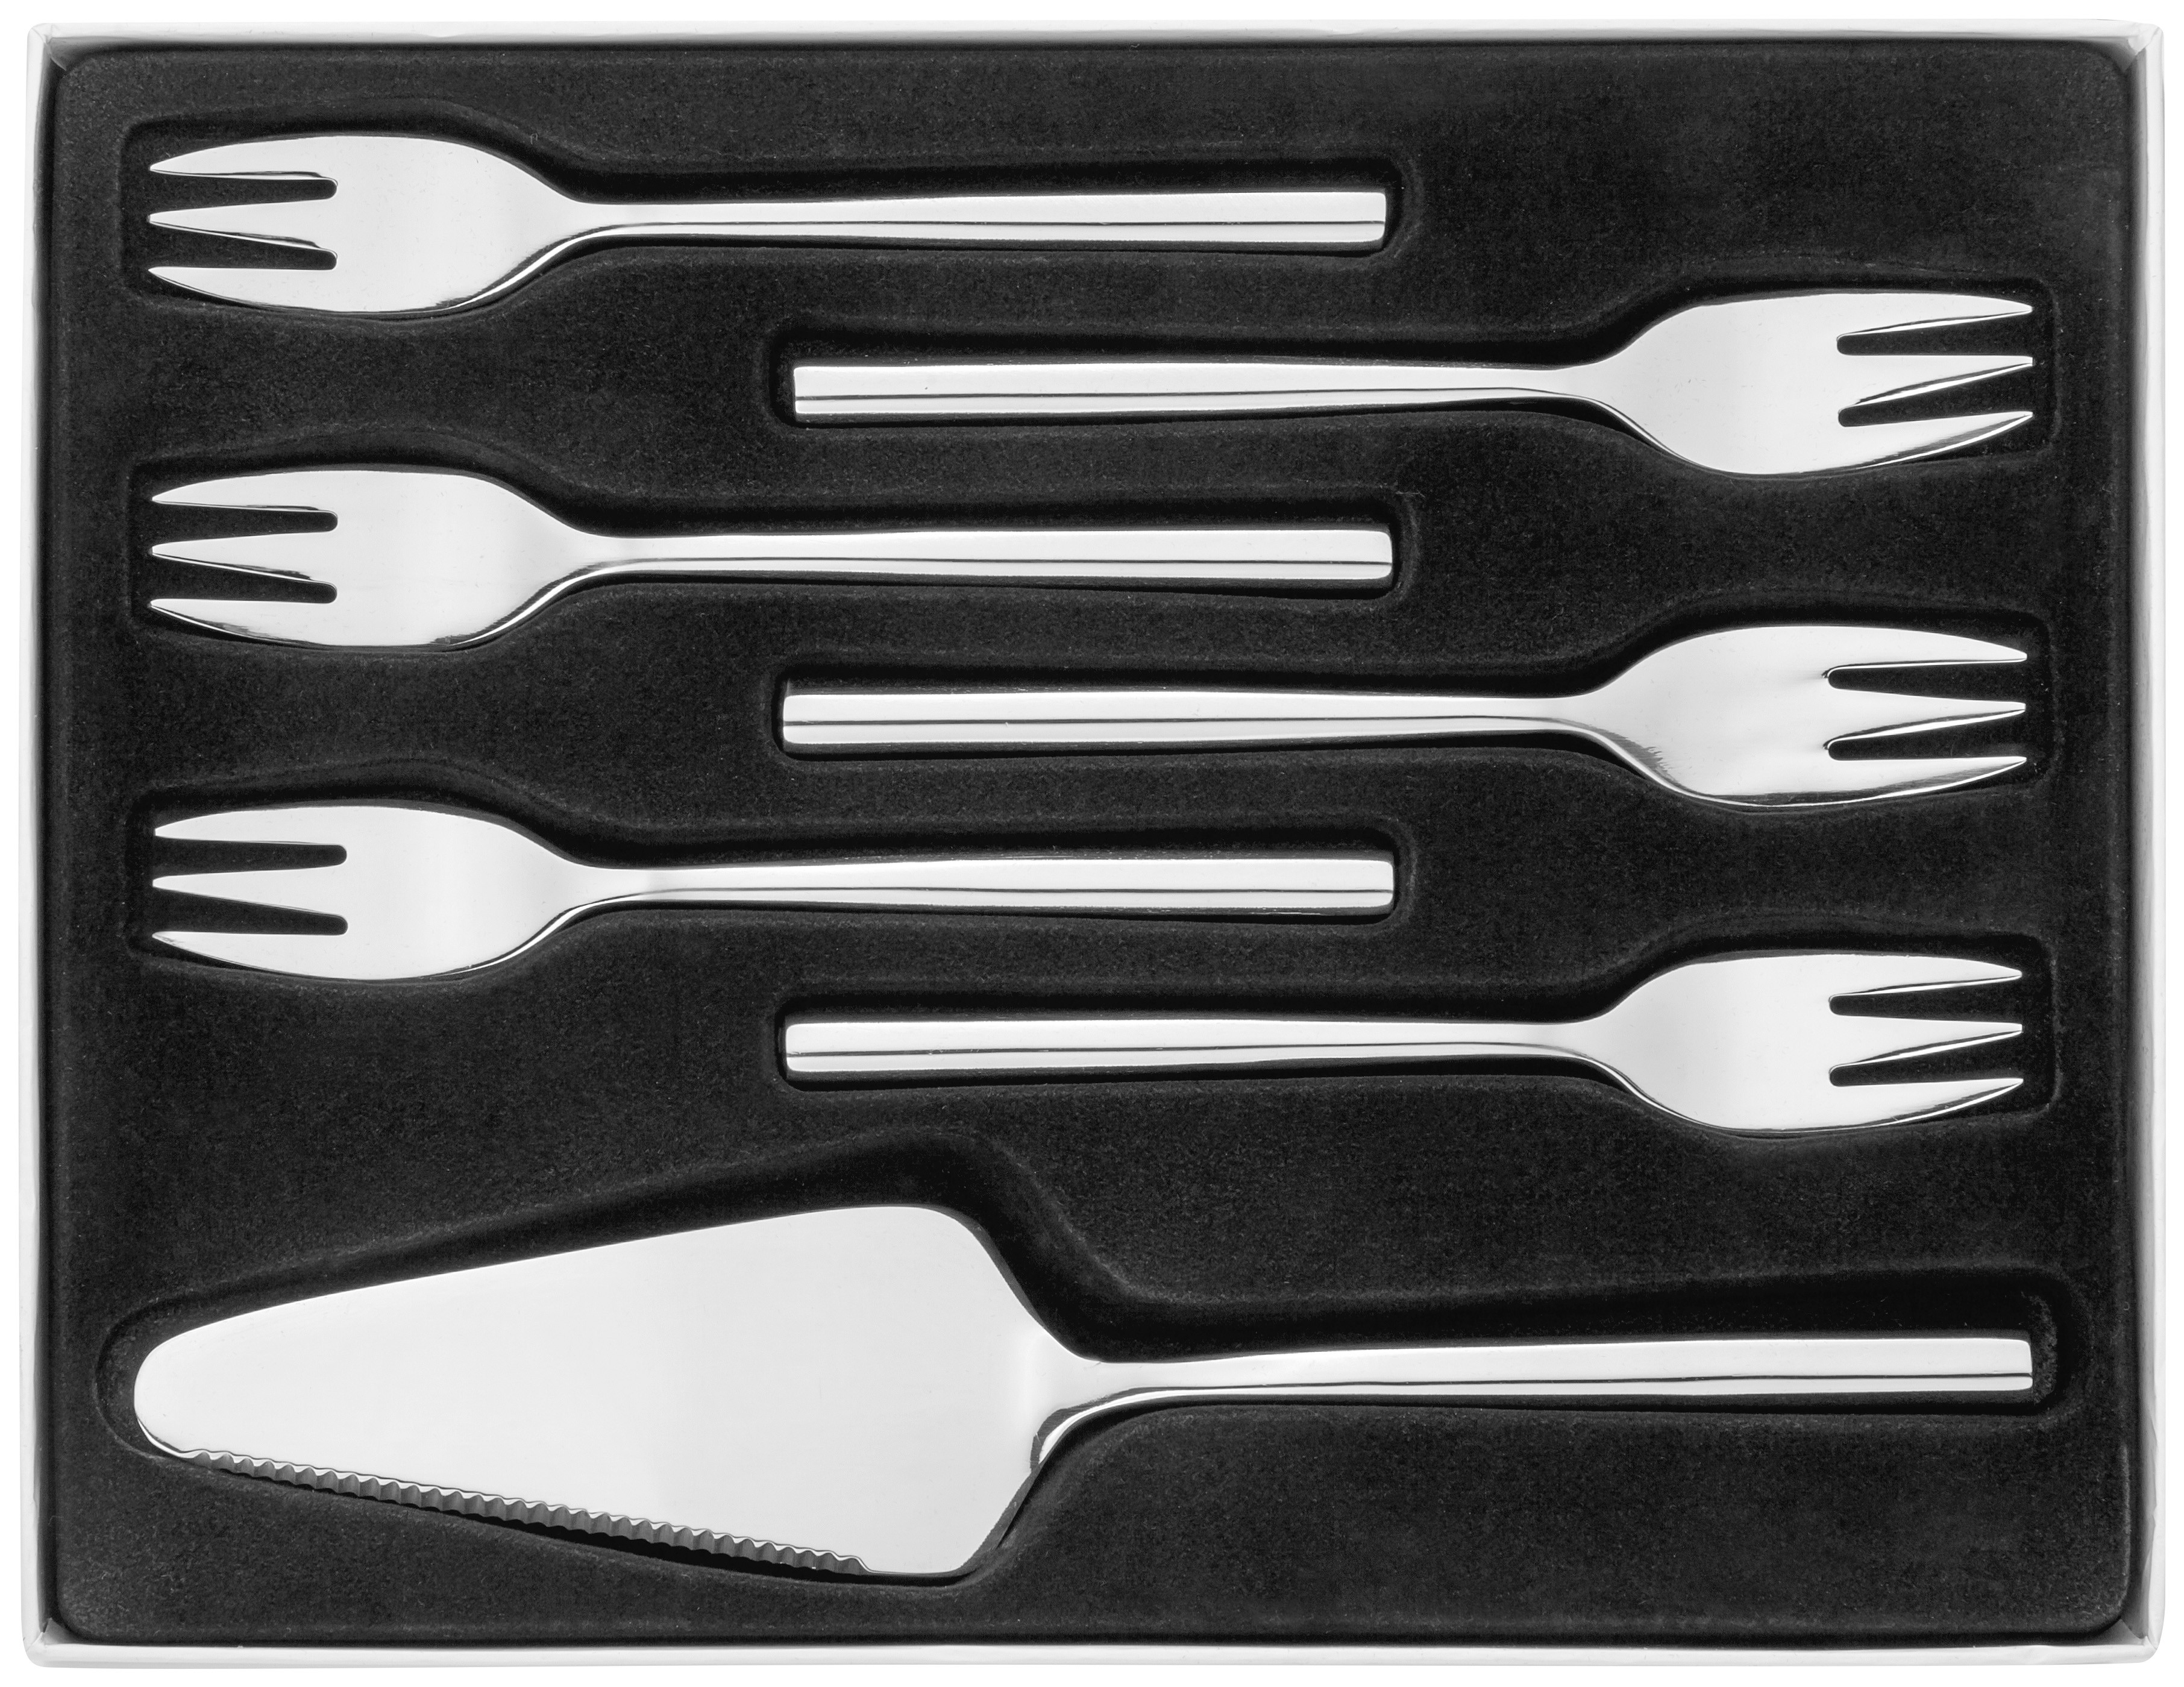 Stellar Cutlery Rochester 7 Piece Cake Cultery Setpc Pastry Set BL31